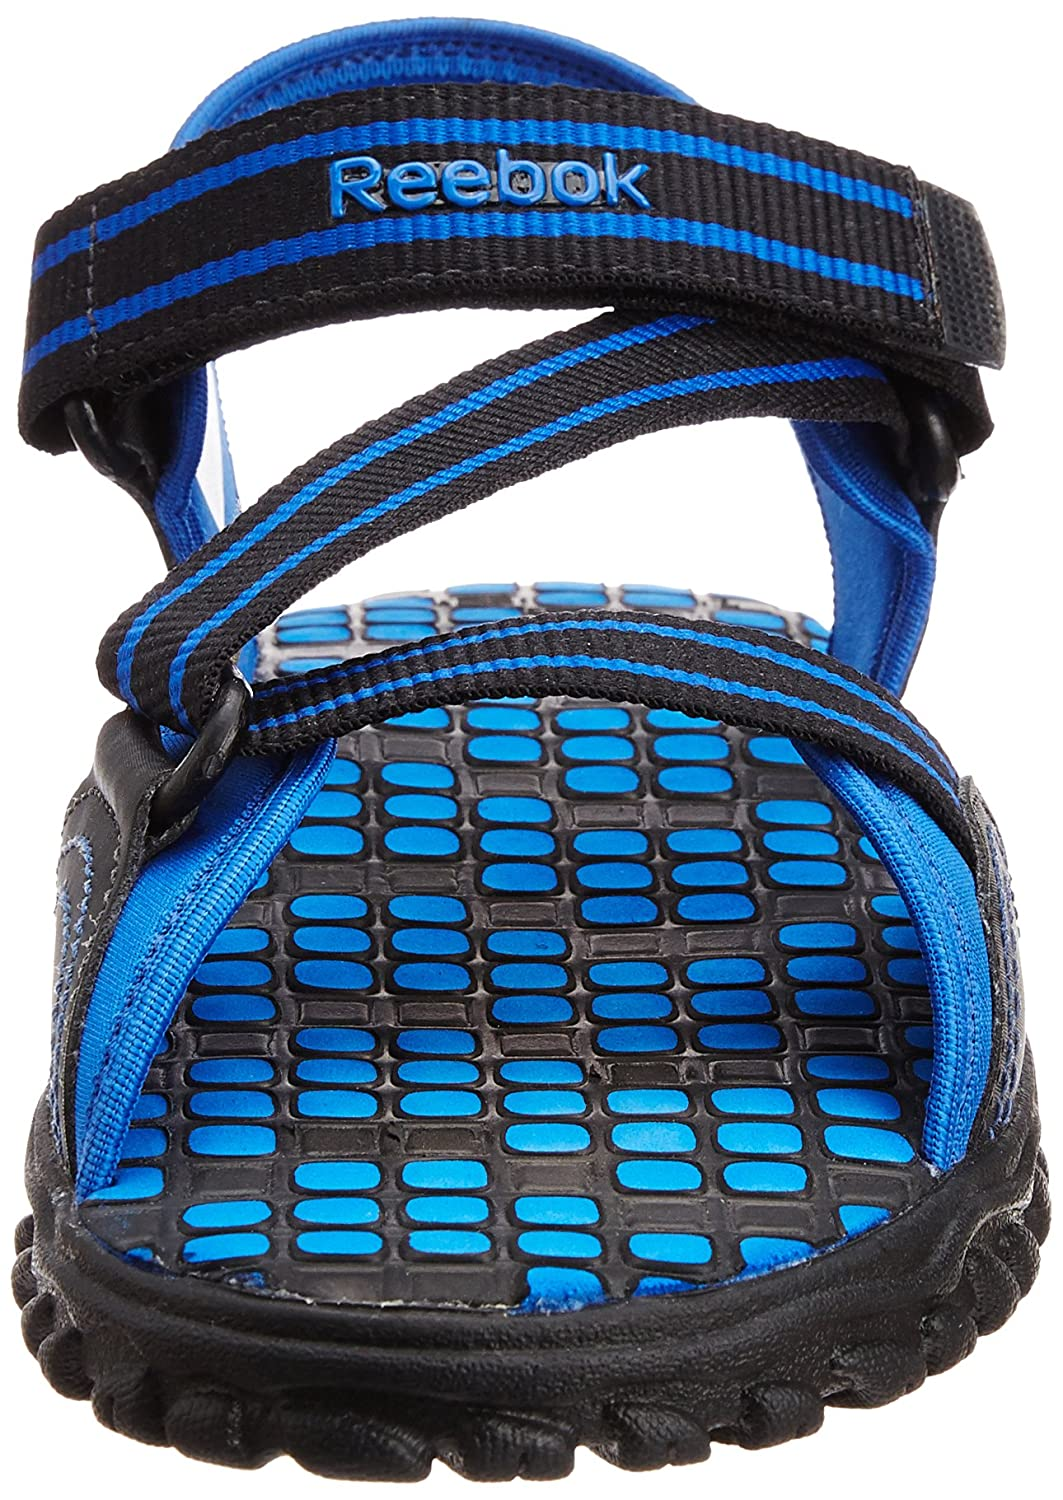 ef97d2361efea Reebok Men s Active Gear Lp Black and Blue Sandals and Floaters - 6 UK  Buy  Online at Low Prices in India - Amazon.in